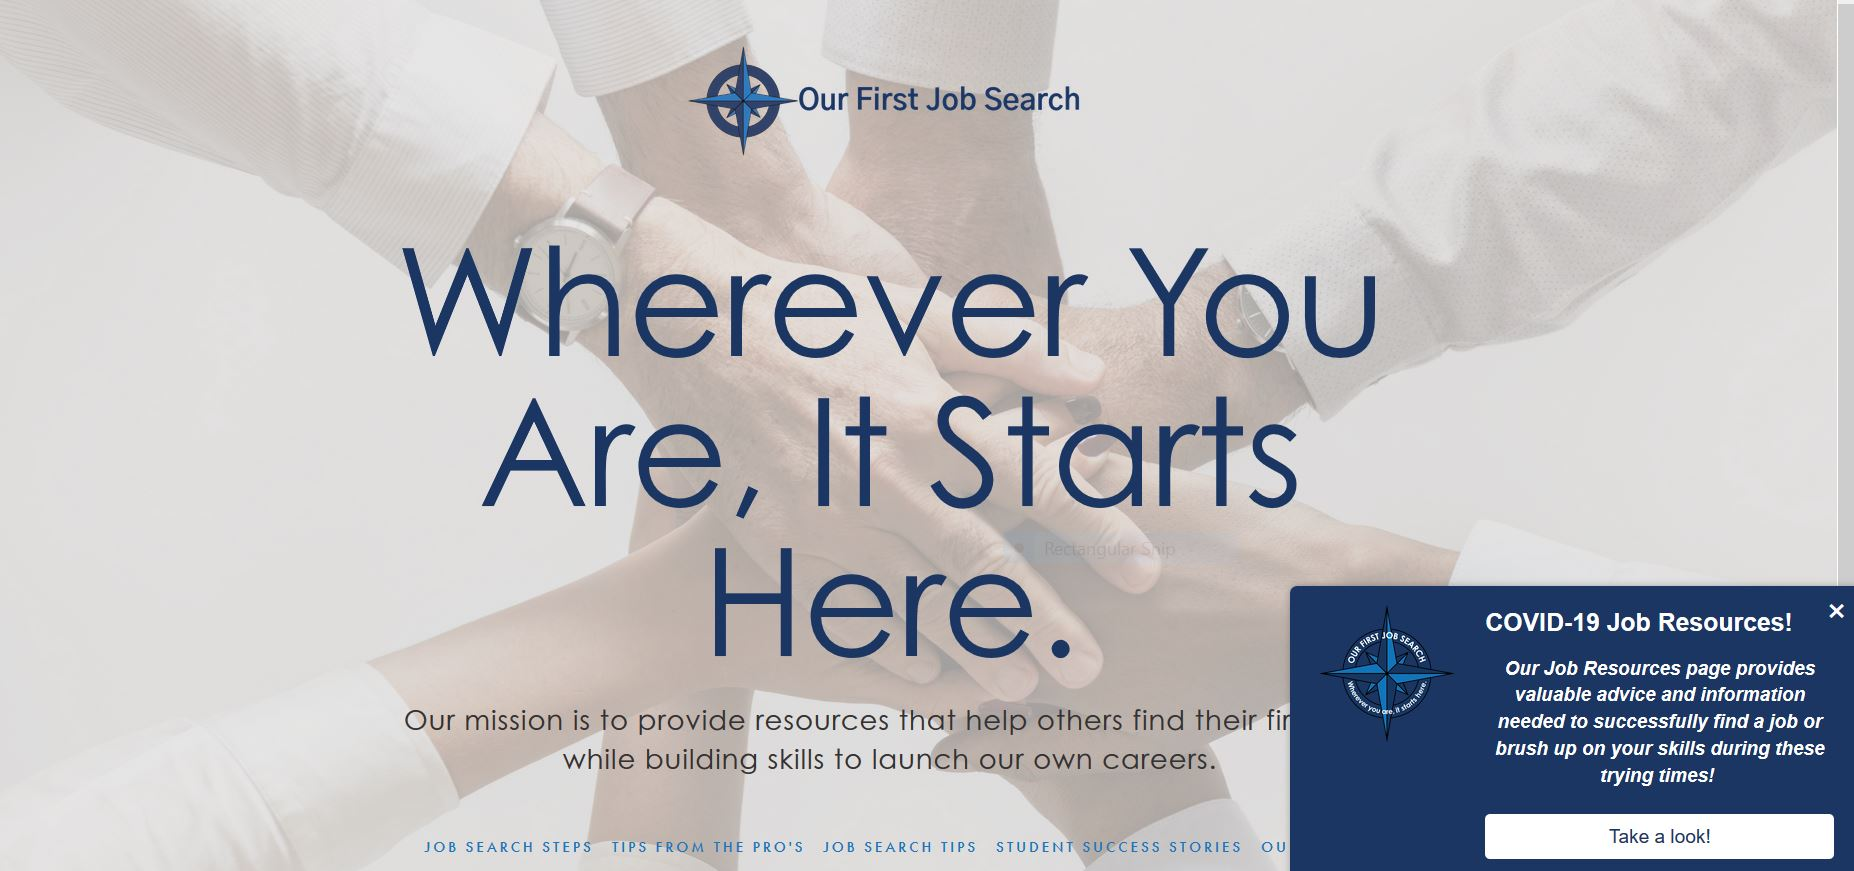 Our First Job Search